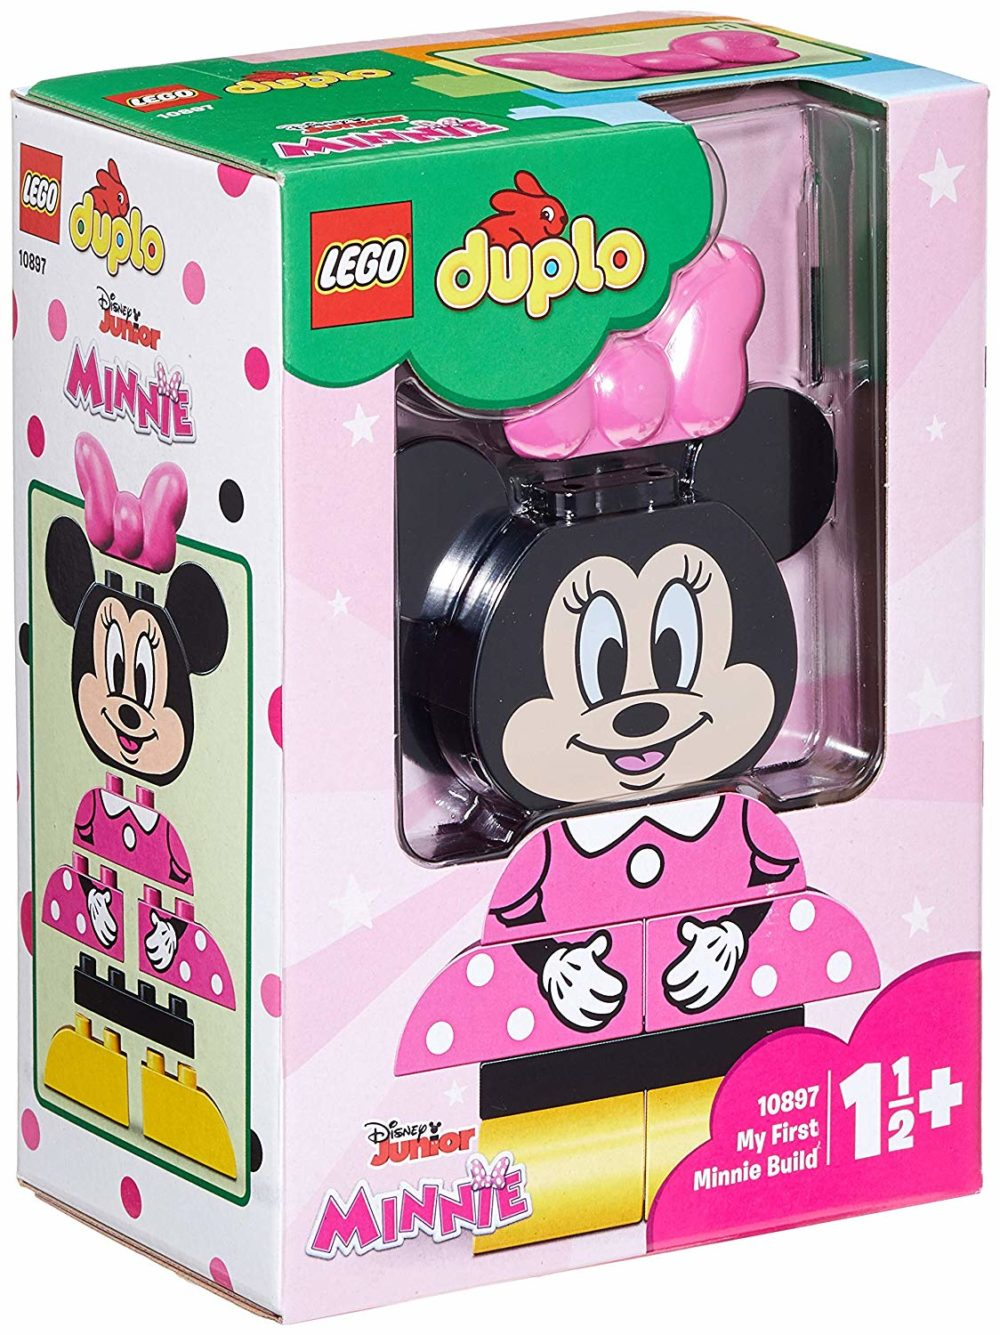 lego-duplo-my-first-minnie-build-10897 zusammengebaut.com